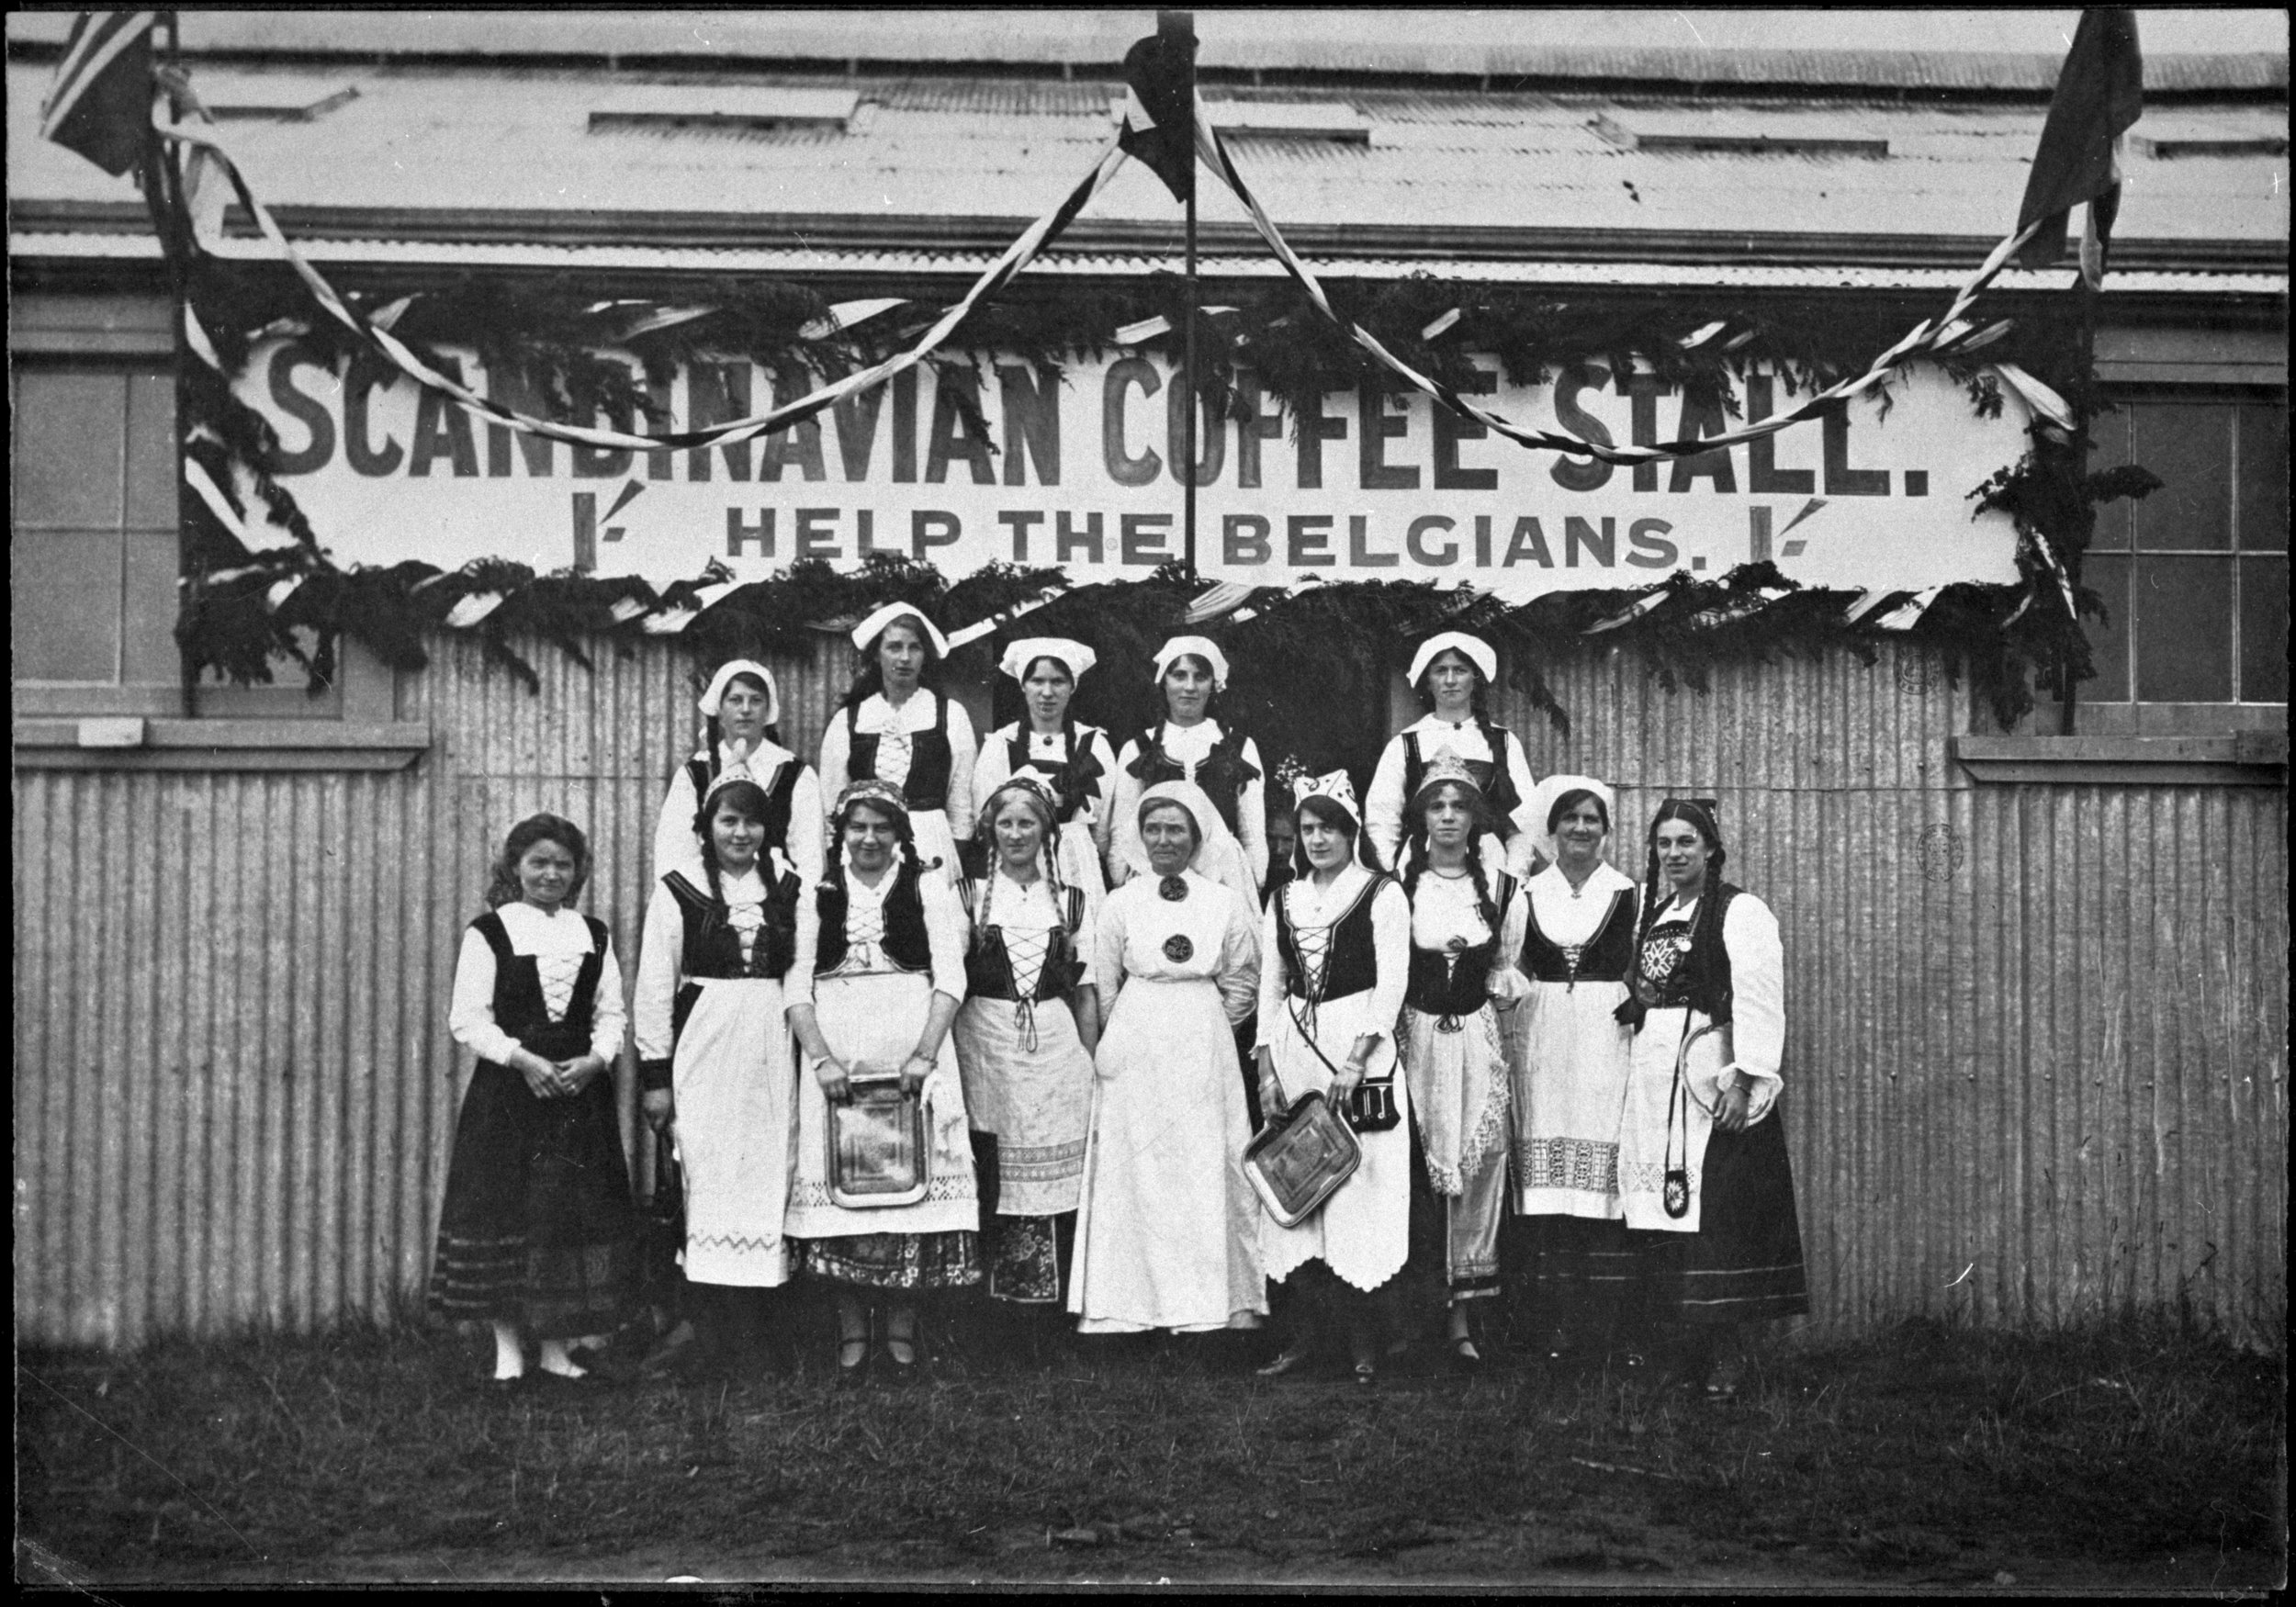 The Scandinavian Club held a stall in March 1915 in order to raise funds for the Belgian Relief Fund. SOURCE: Pataka Ipurangi,Palmerston North City Library photograph collection